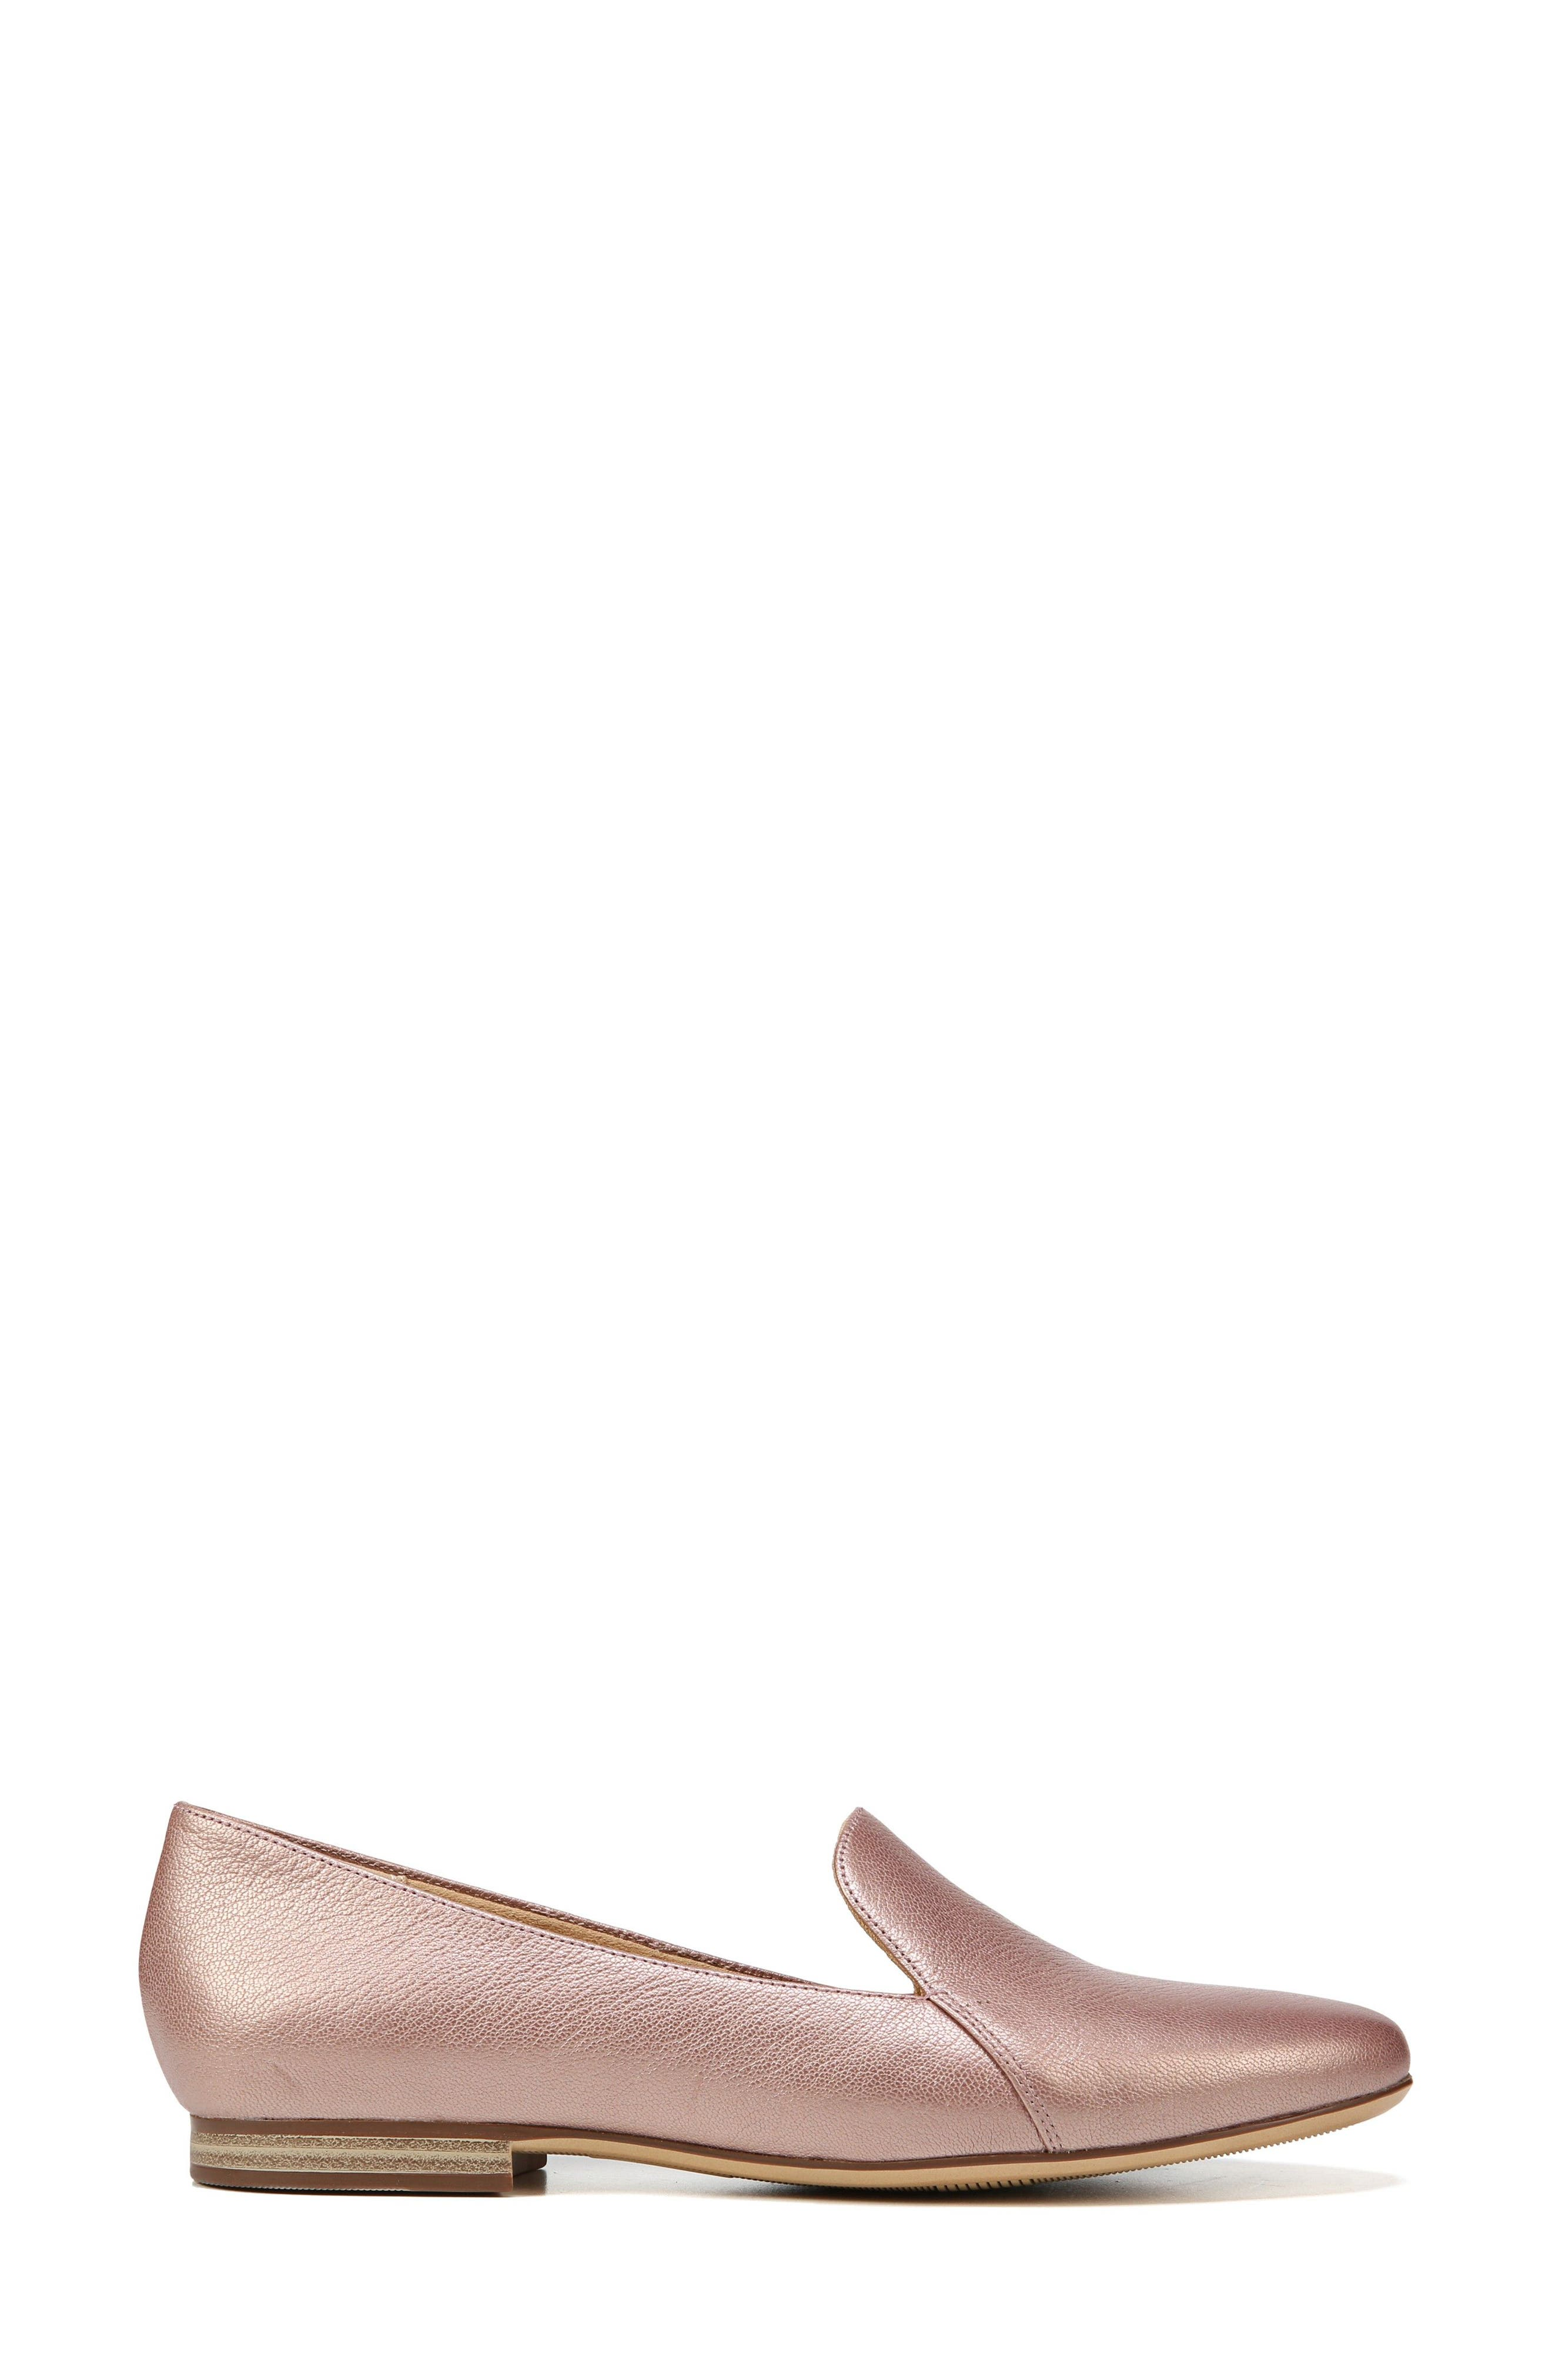 Emiline Flat Loafer,                             Alternate thumbnail 3, color,                             ROSE GOLD LEATHER